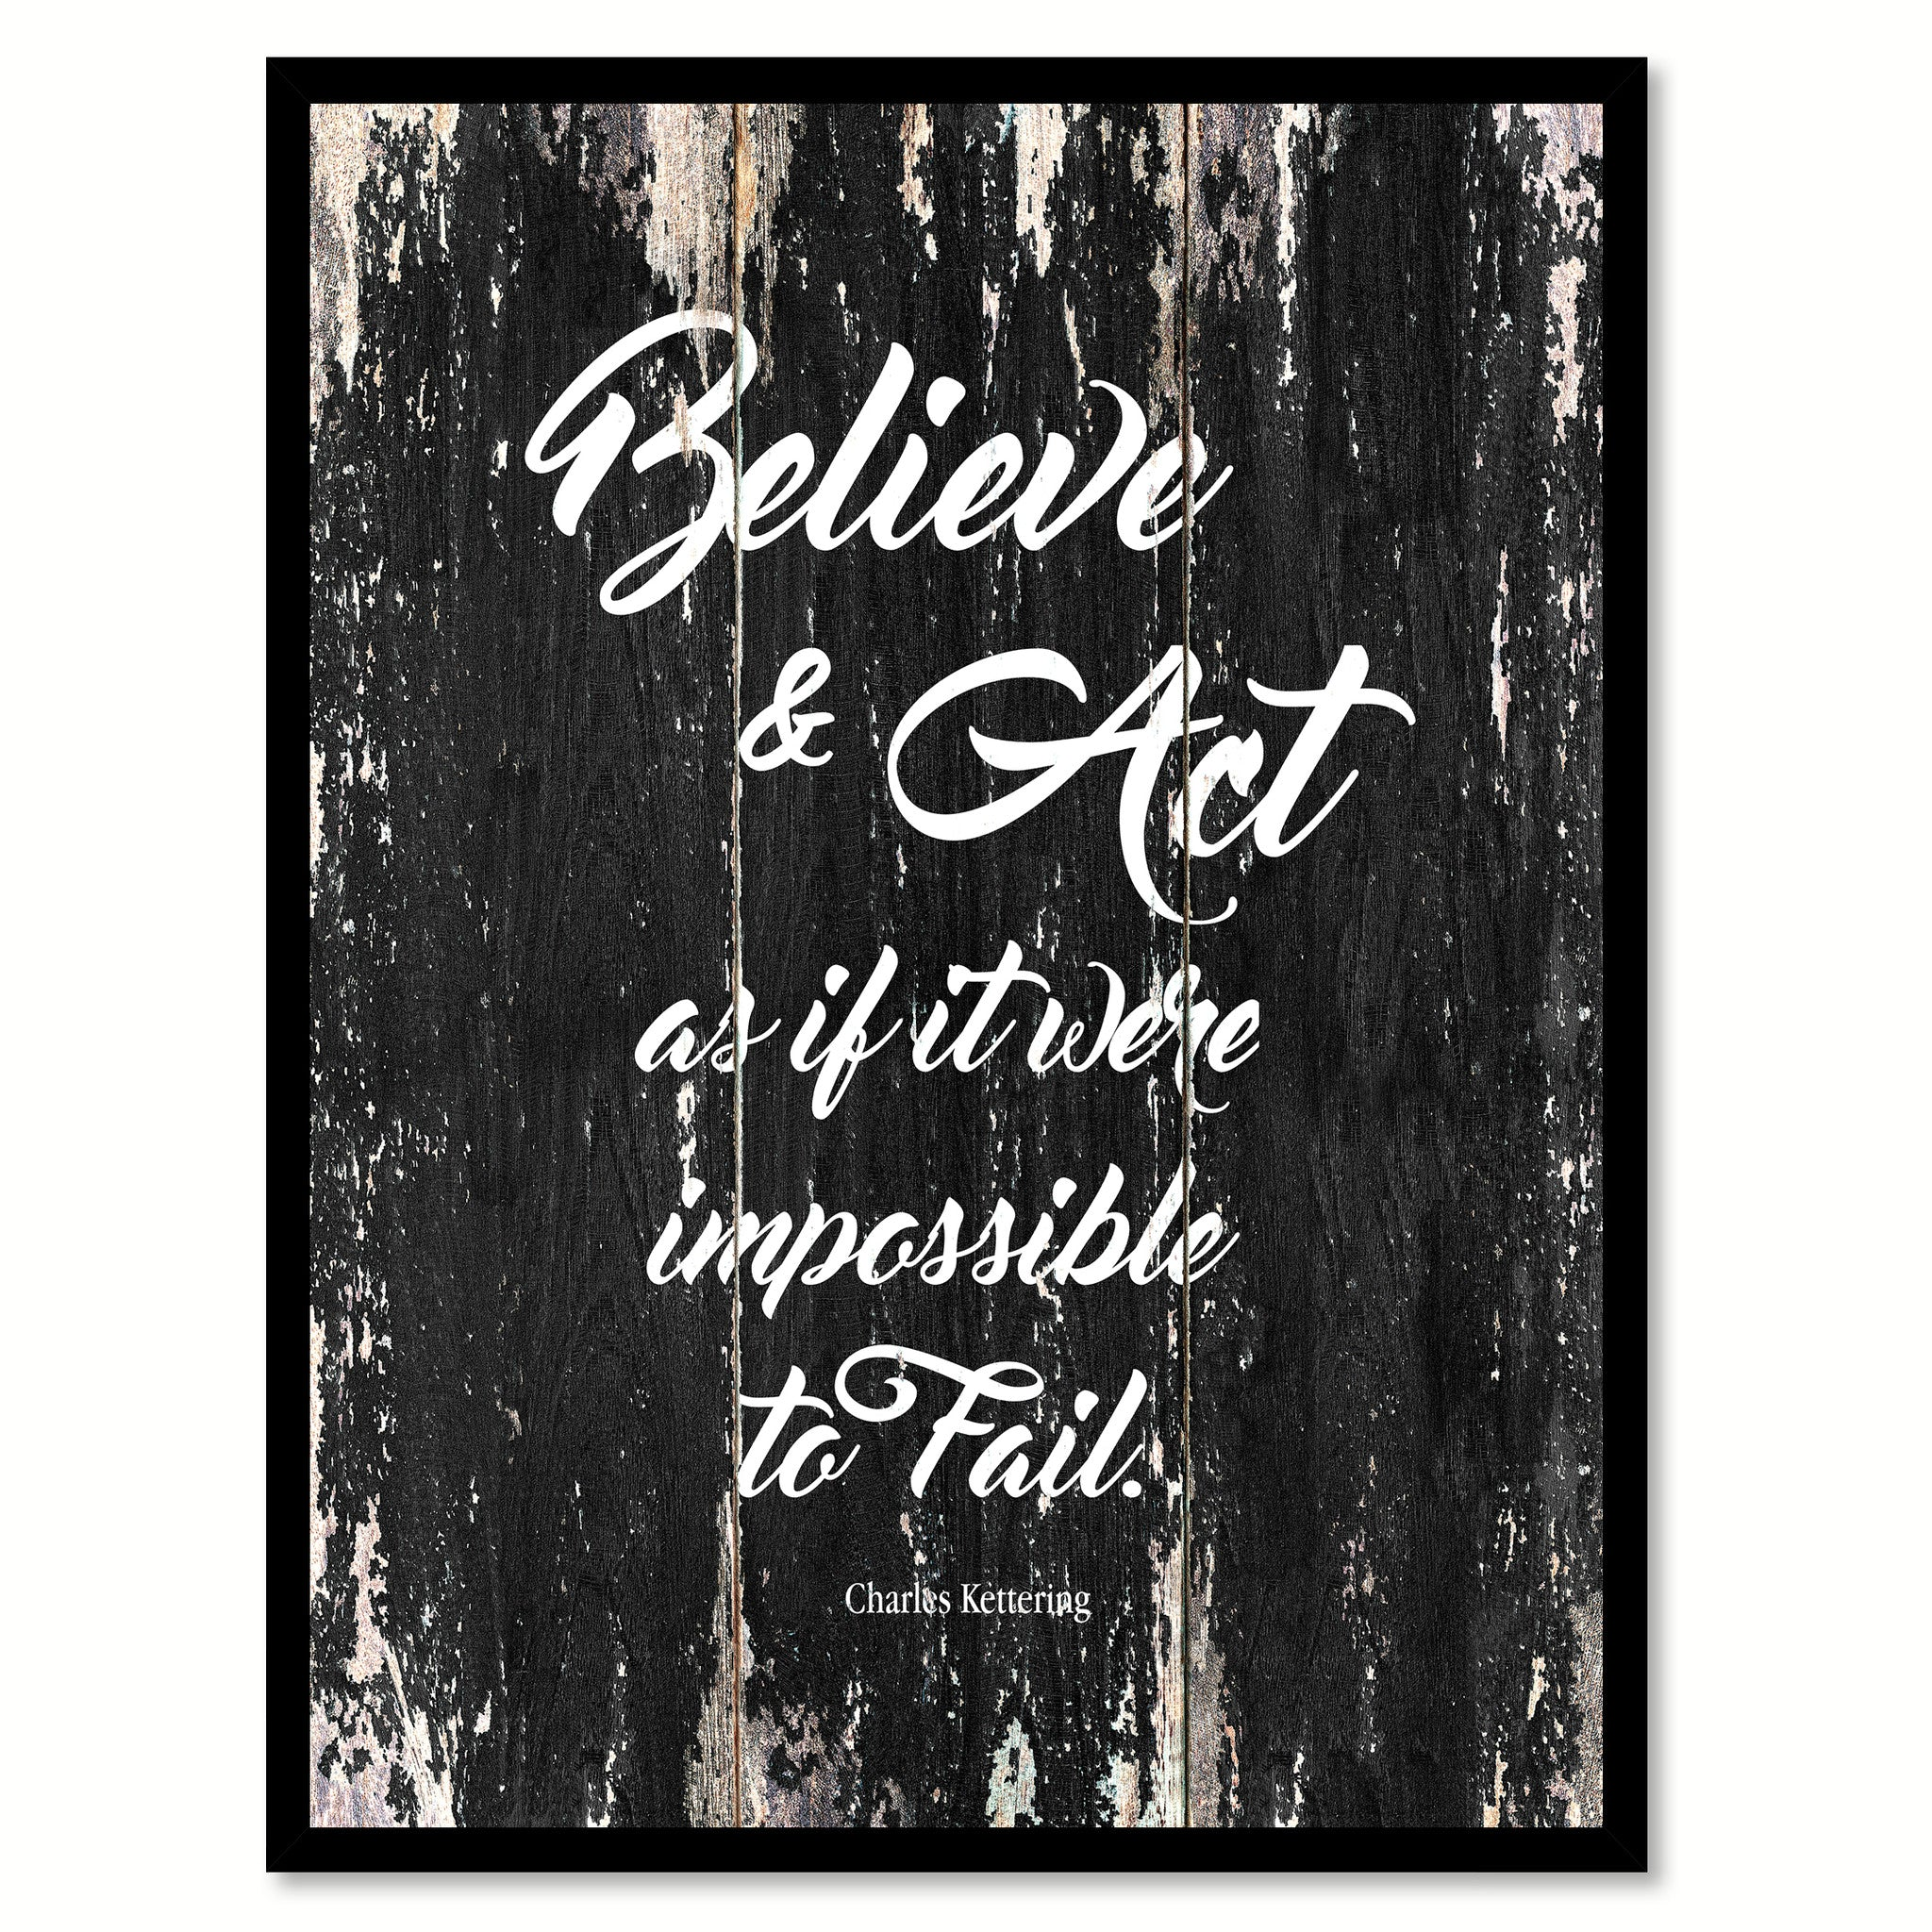 Believe & act as if it were impossible to fail Motivational Quote Saying Canvas Print with Picture Frame Home Decor Wall Art